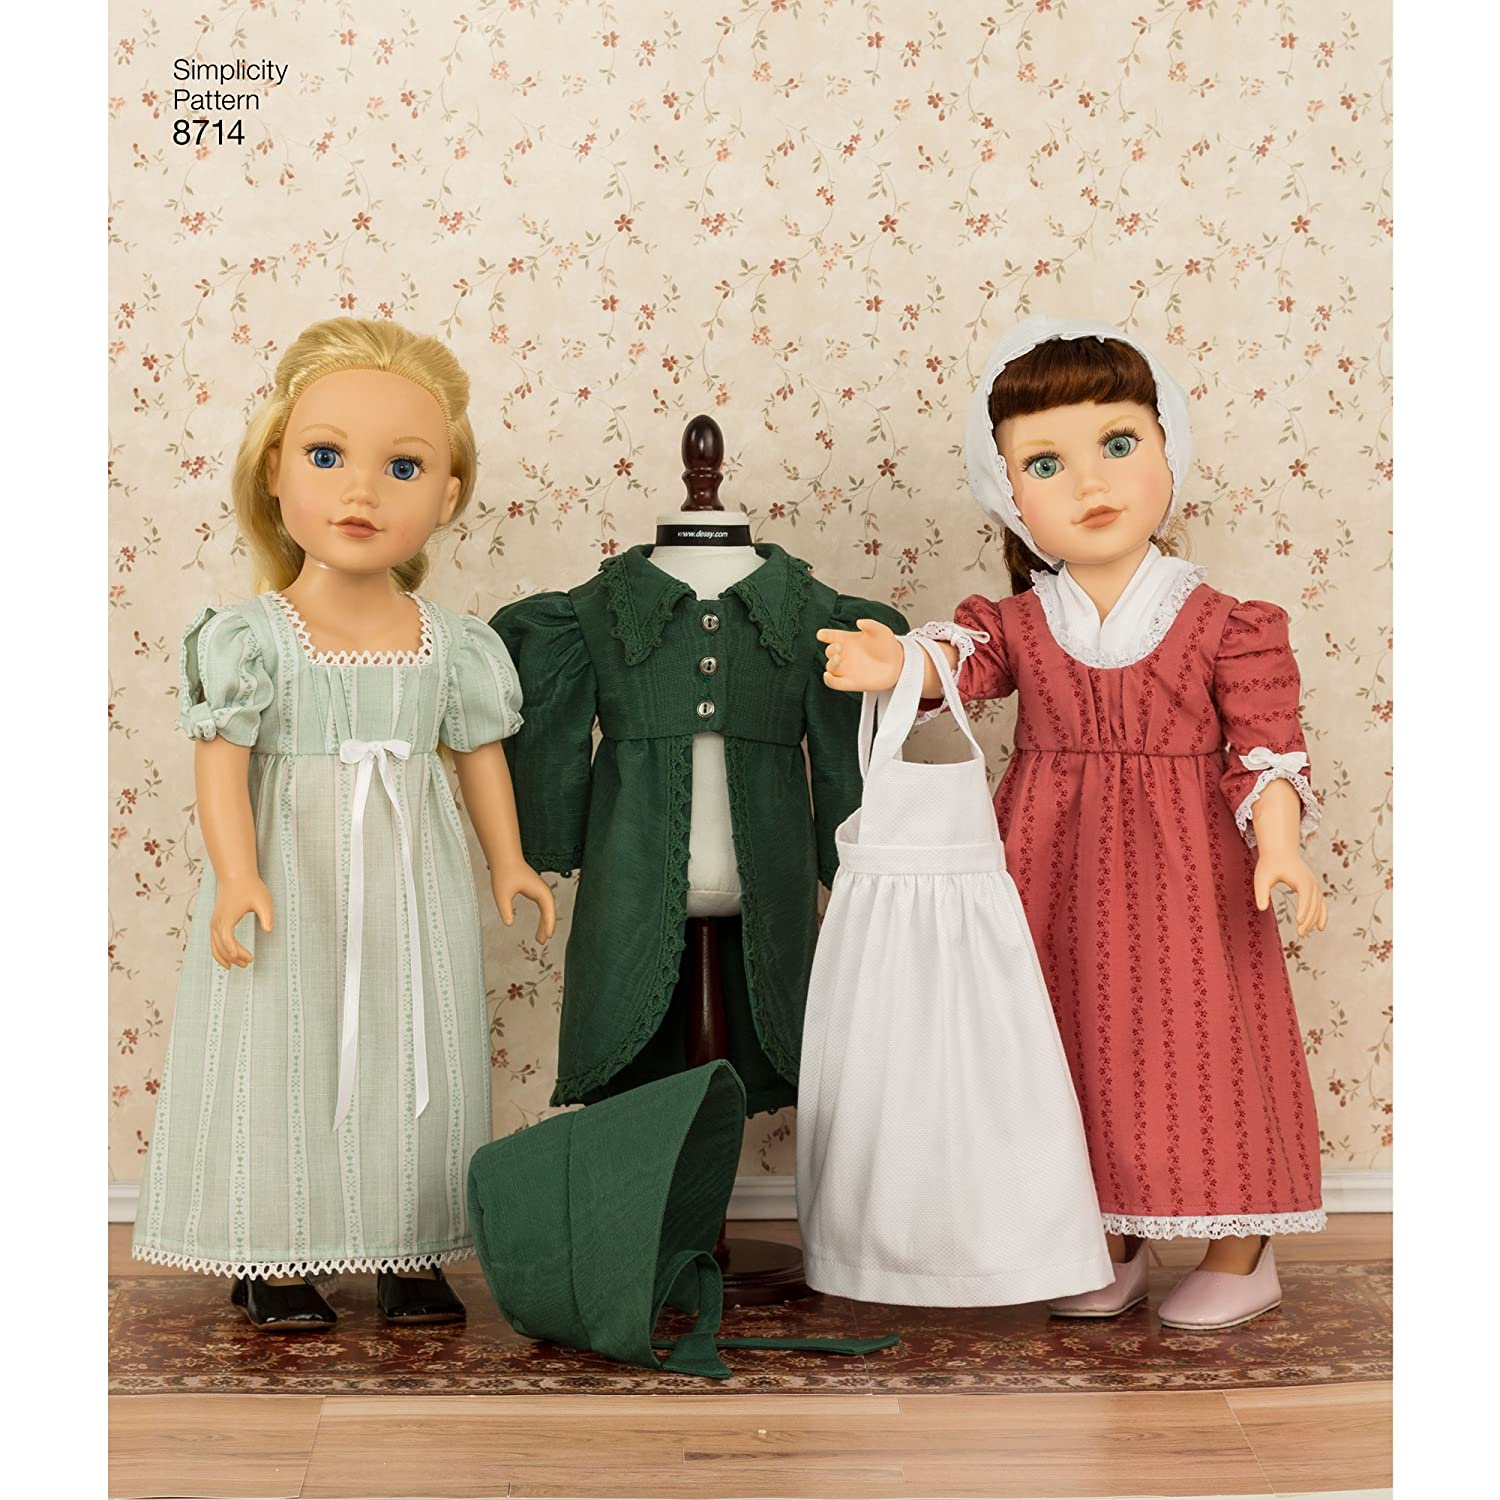 Simplicity Sewing Pattern 8714 OS 18-Inch Doll Clothes by Simplicity Creative Patterns One Size